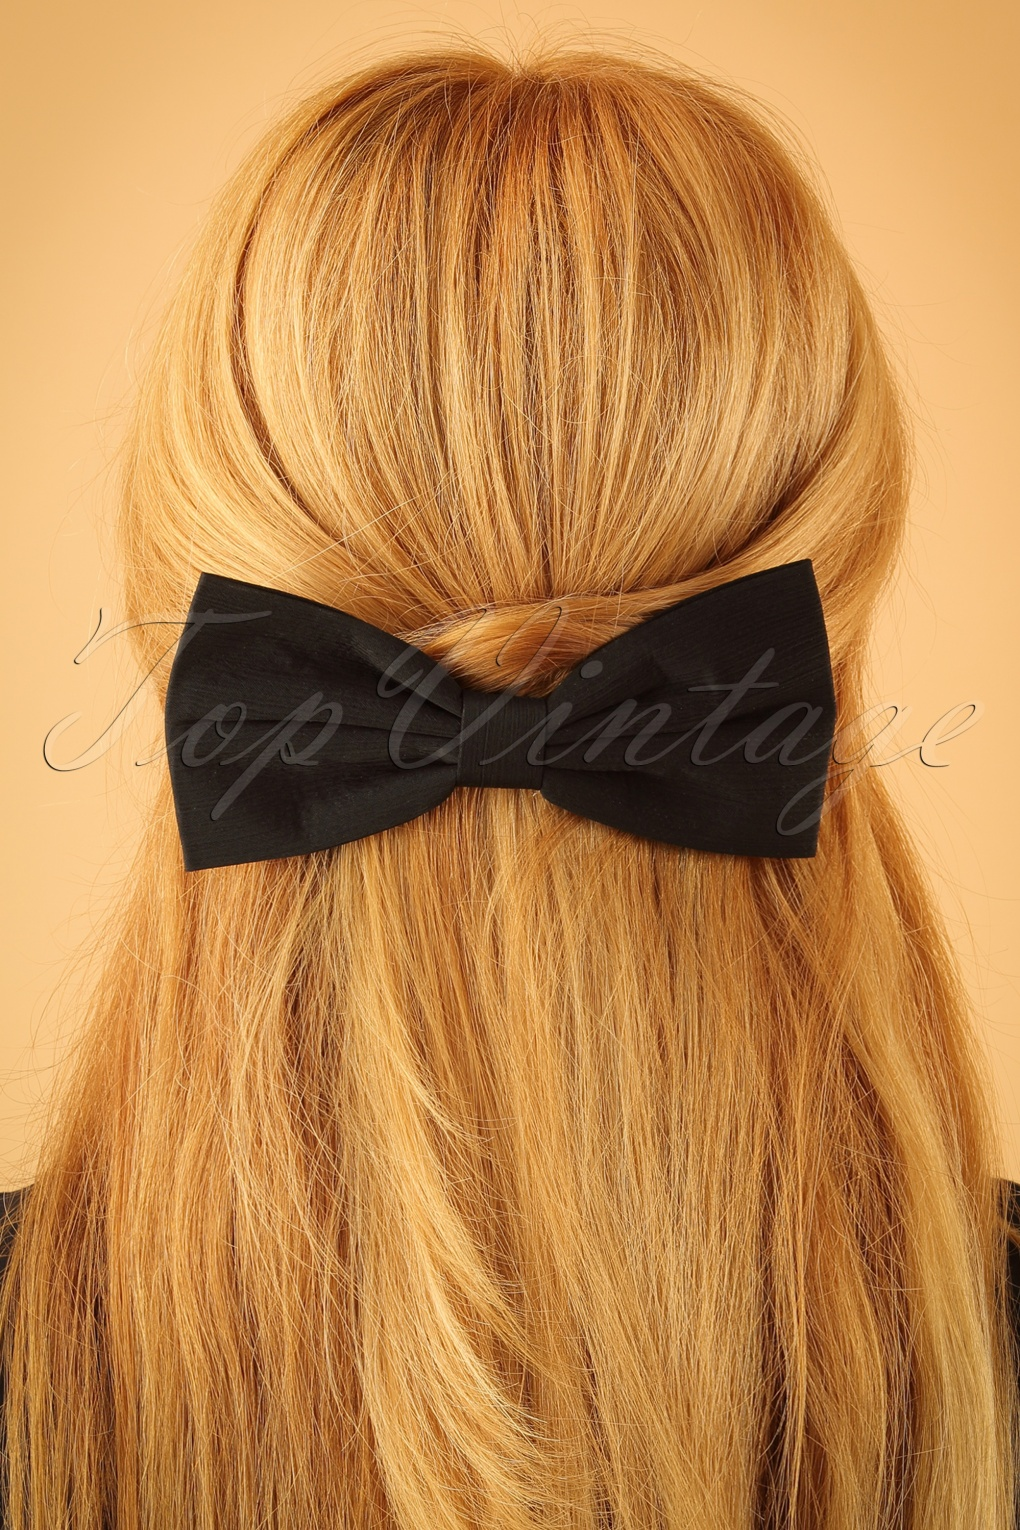 Vintage Hair Accessories: Combs, Headbands, Flowers, Scarf, Wigs 50s Hair Bow in Black £4.40 AT vintagedancer.com